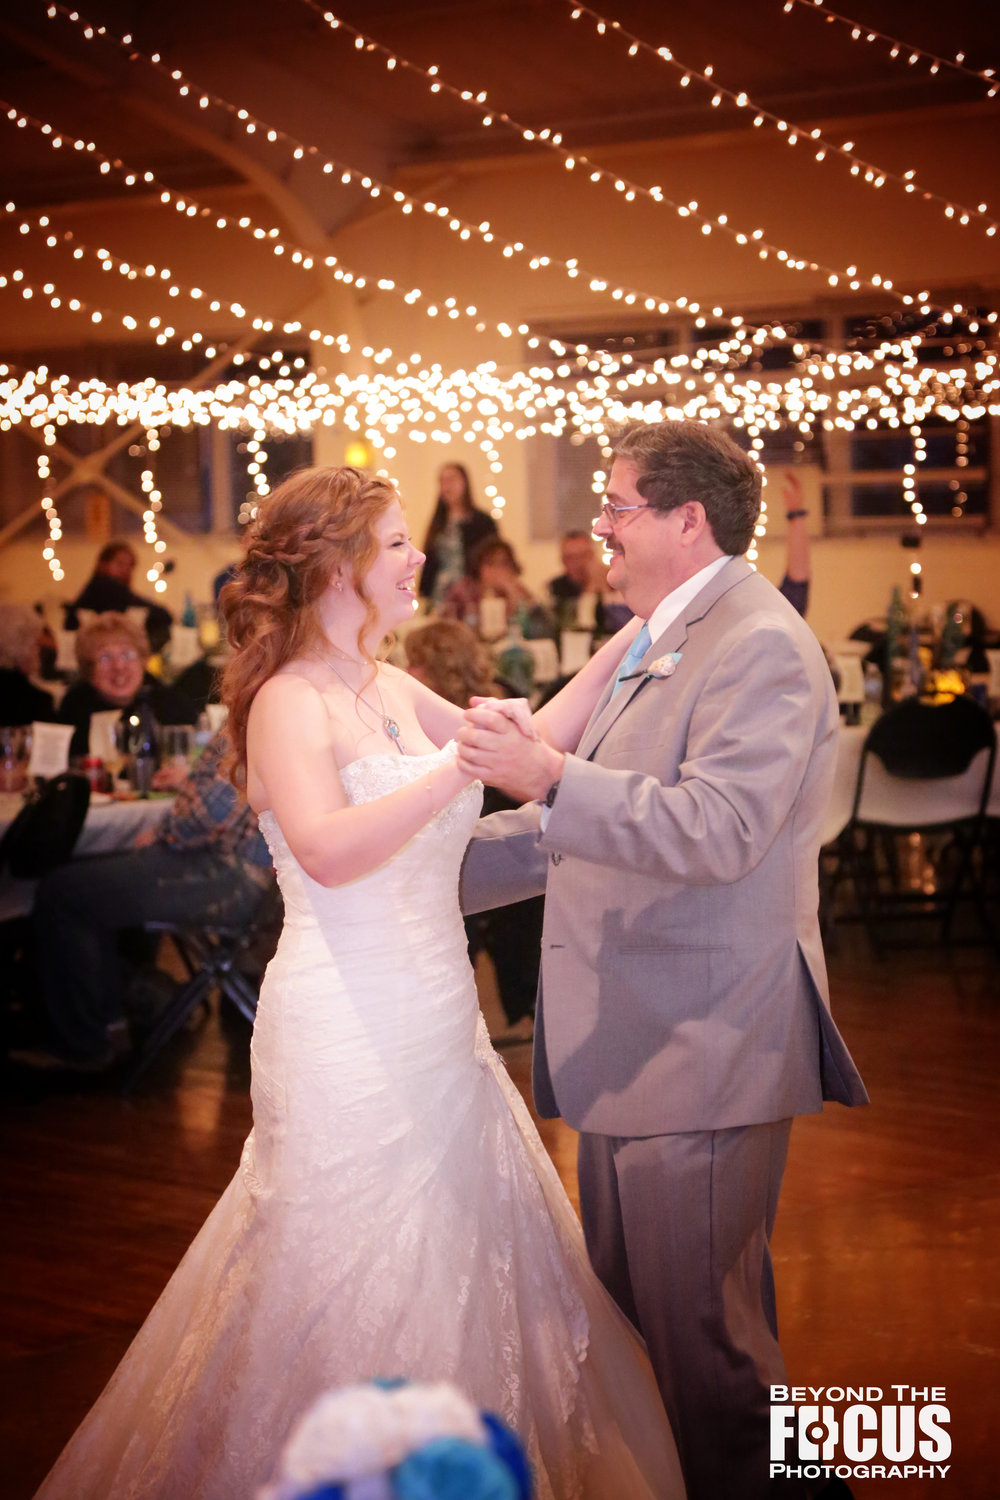 Alex_Katie_WeddingReception__97.jpg